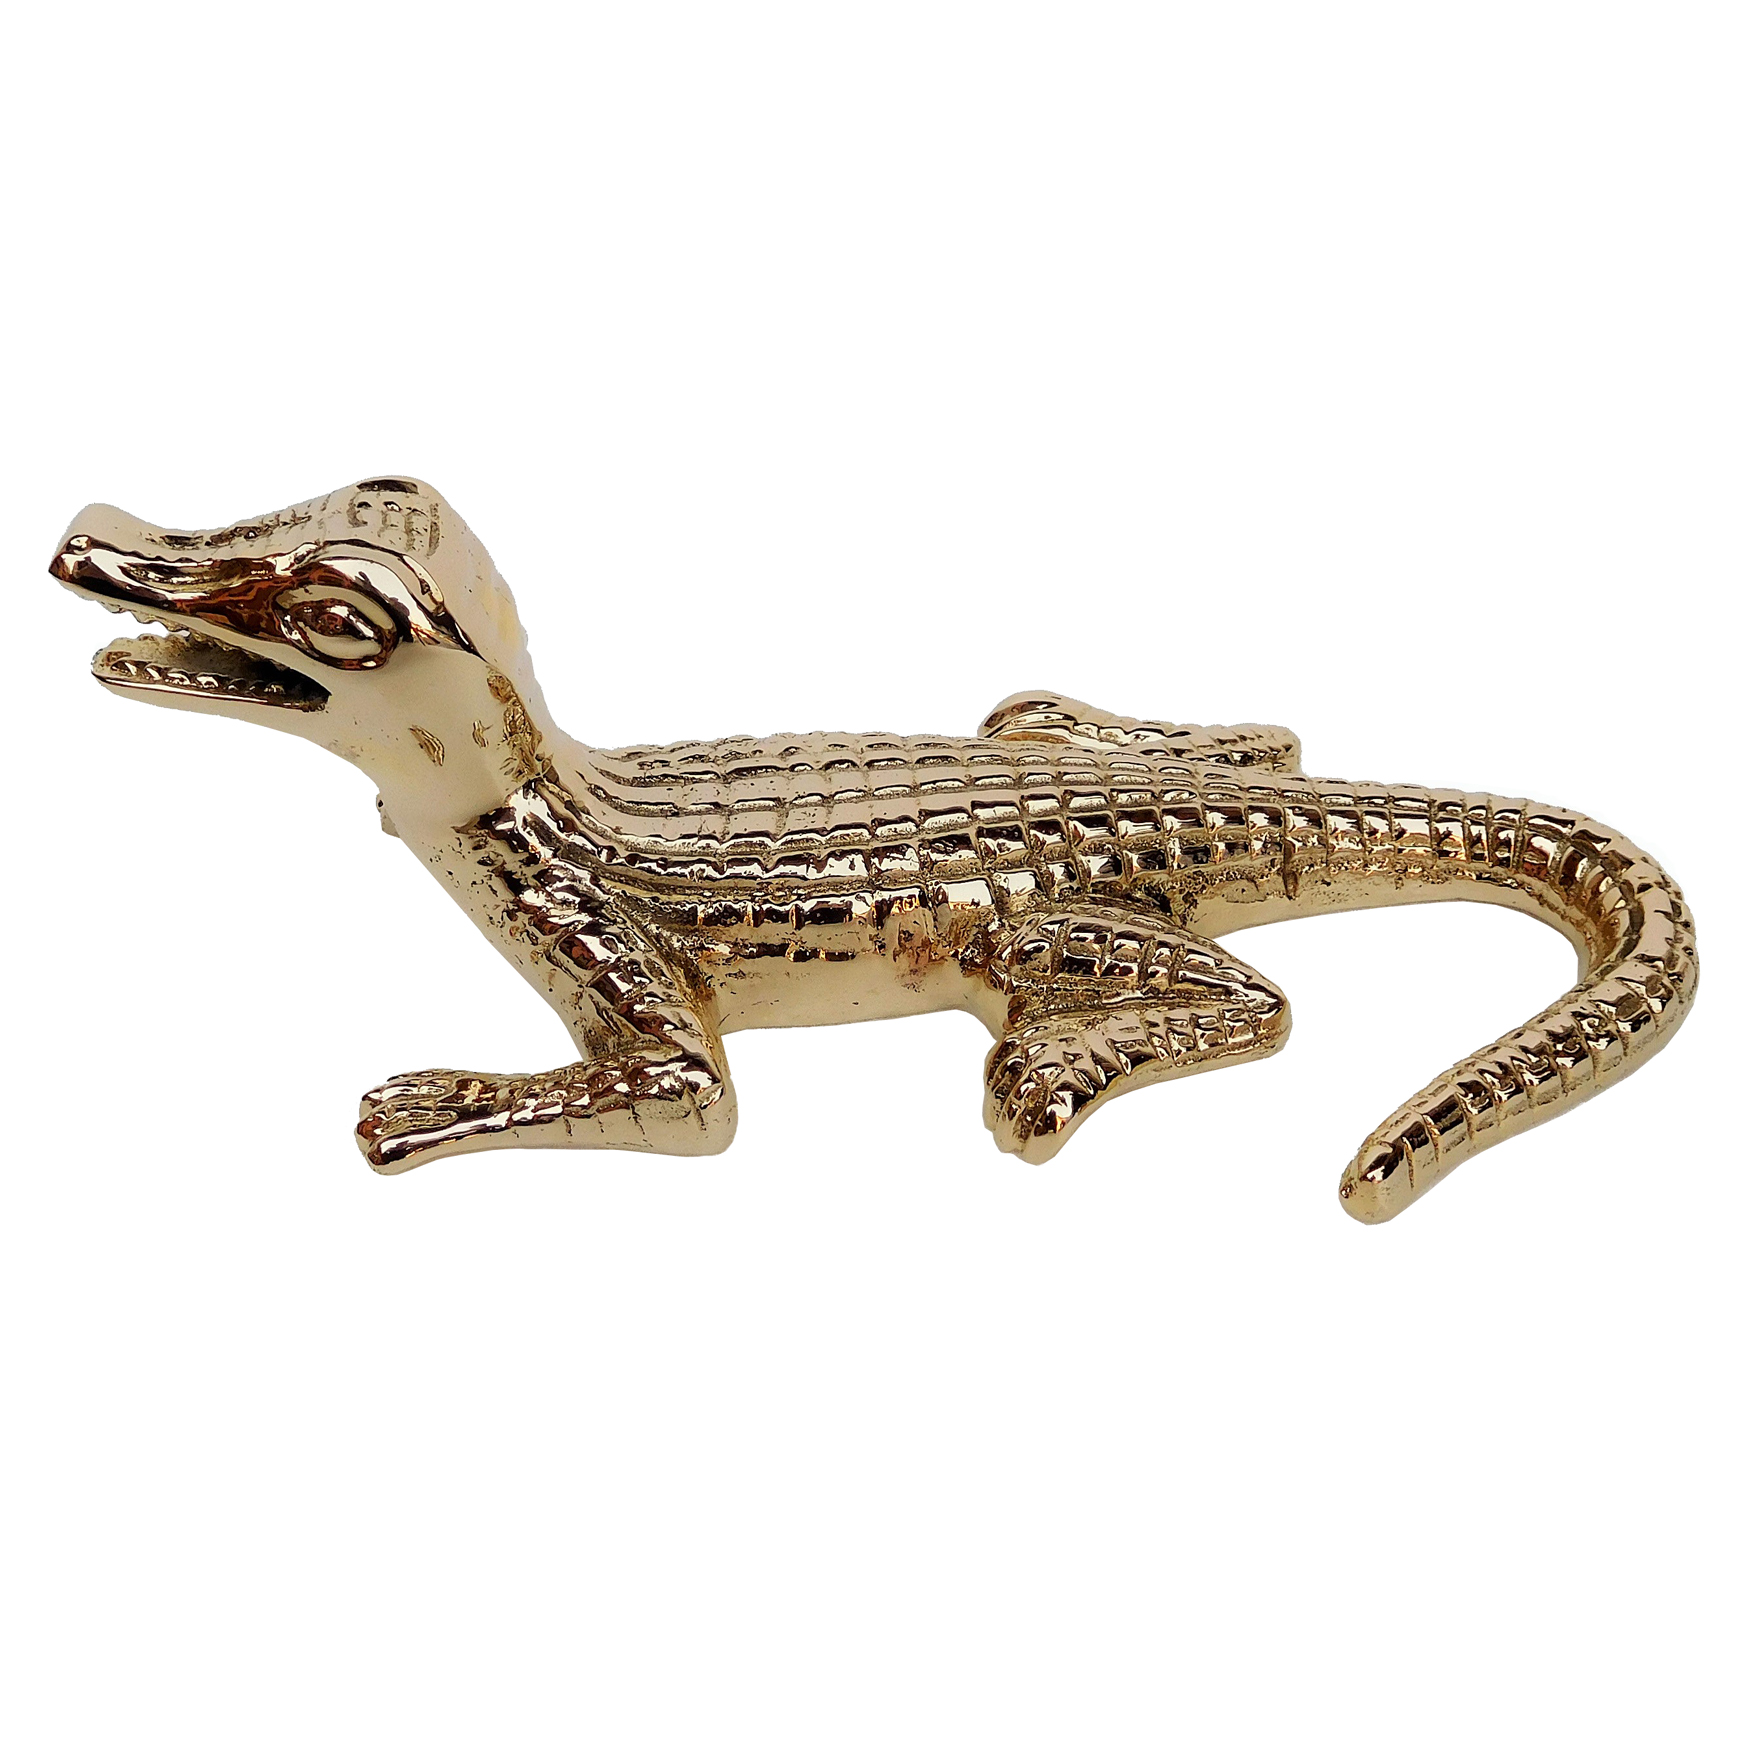 Hollywood Regency Plated Gold Baby Alligator Sculpture